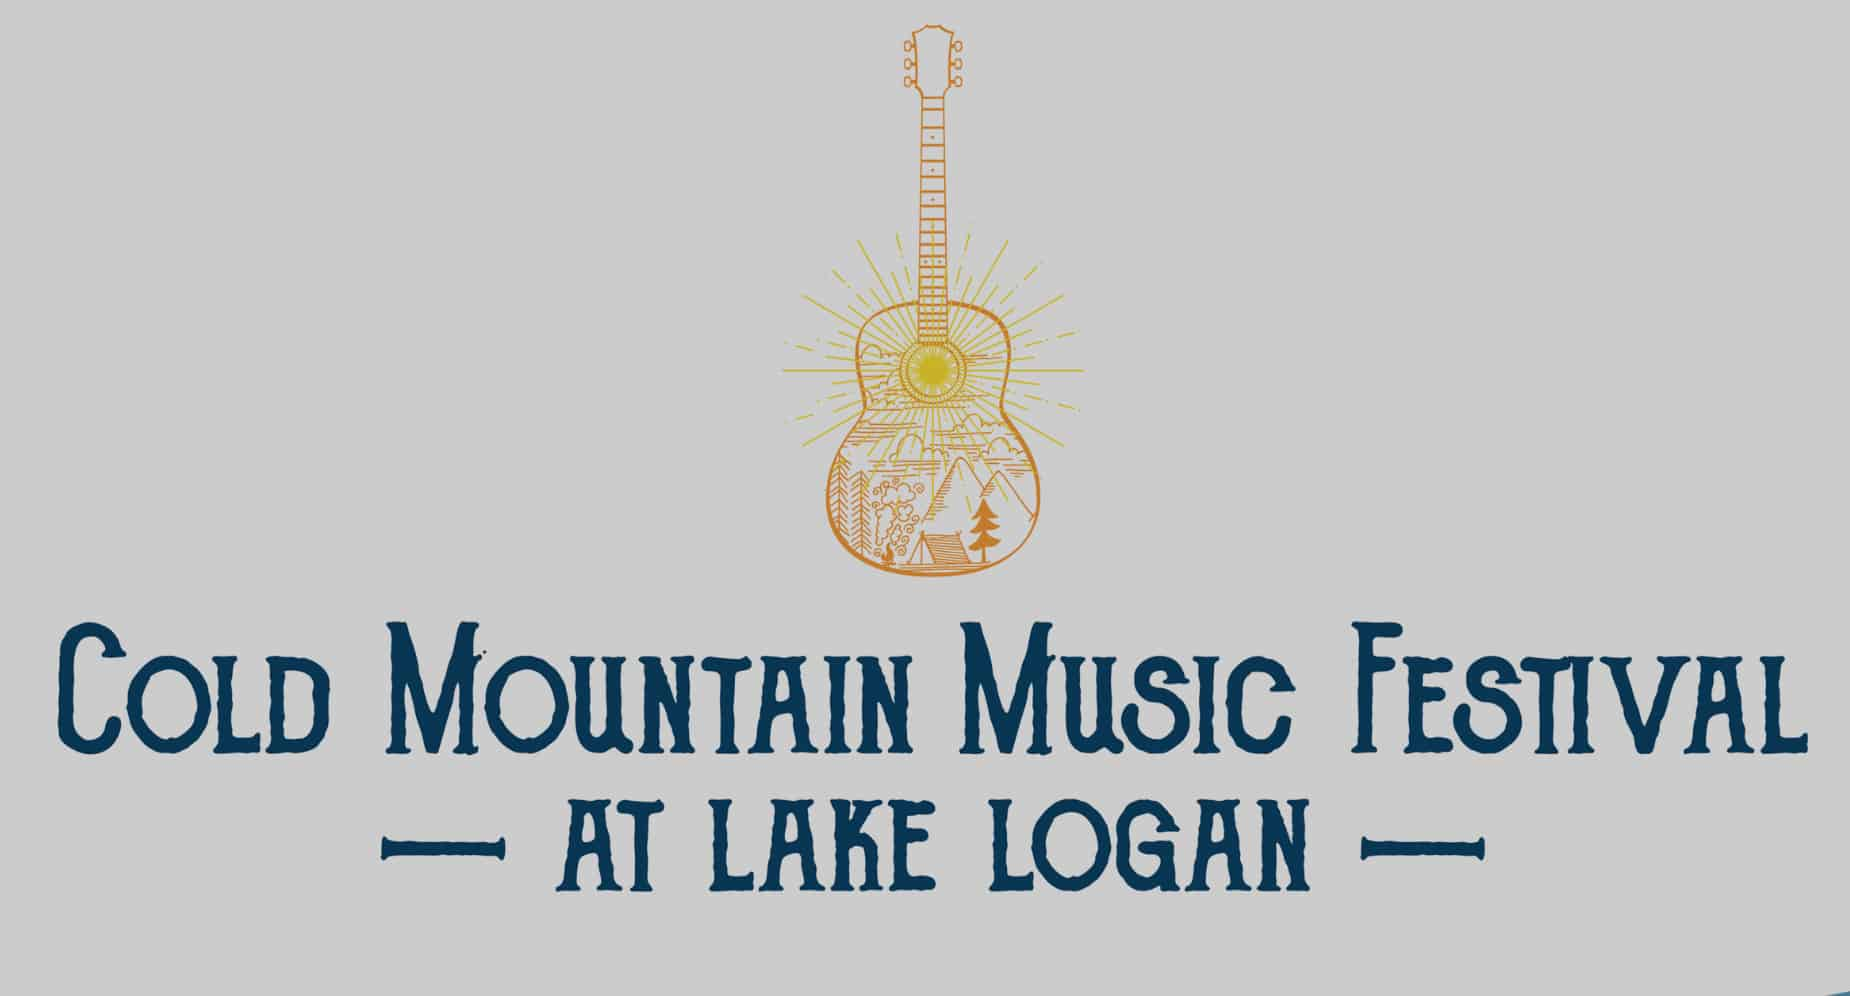 Cold Mountain Music Festival at Lake Logan